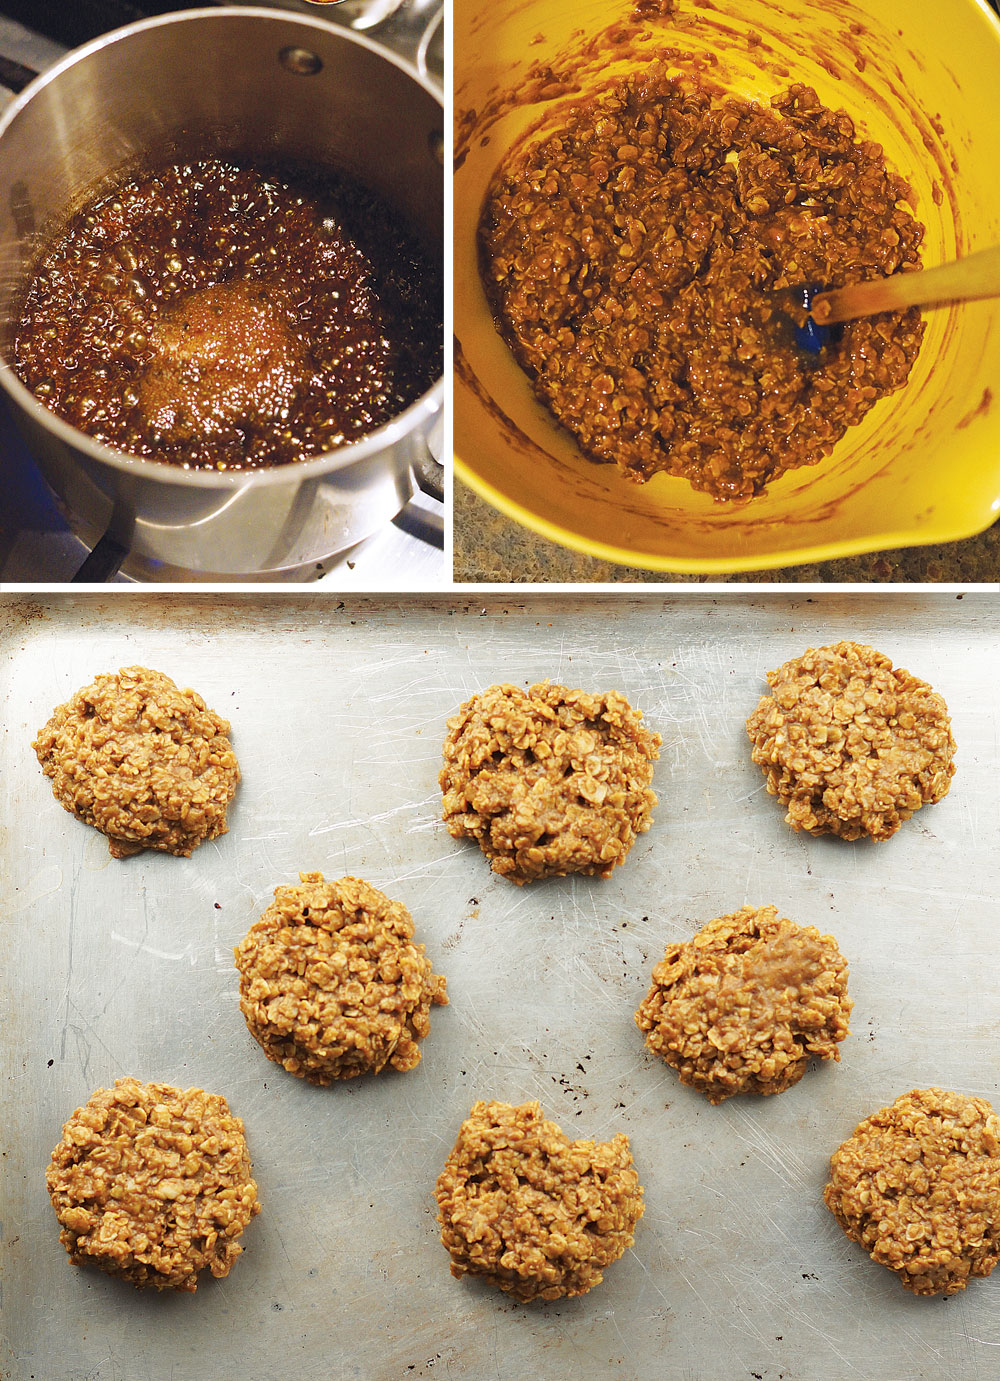 making no-bake spice cookies and putting them on a pan